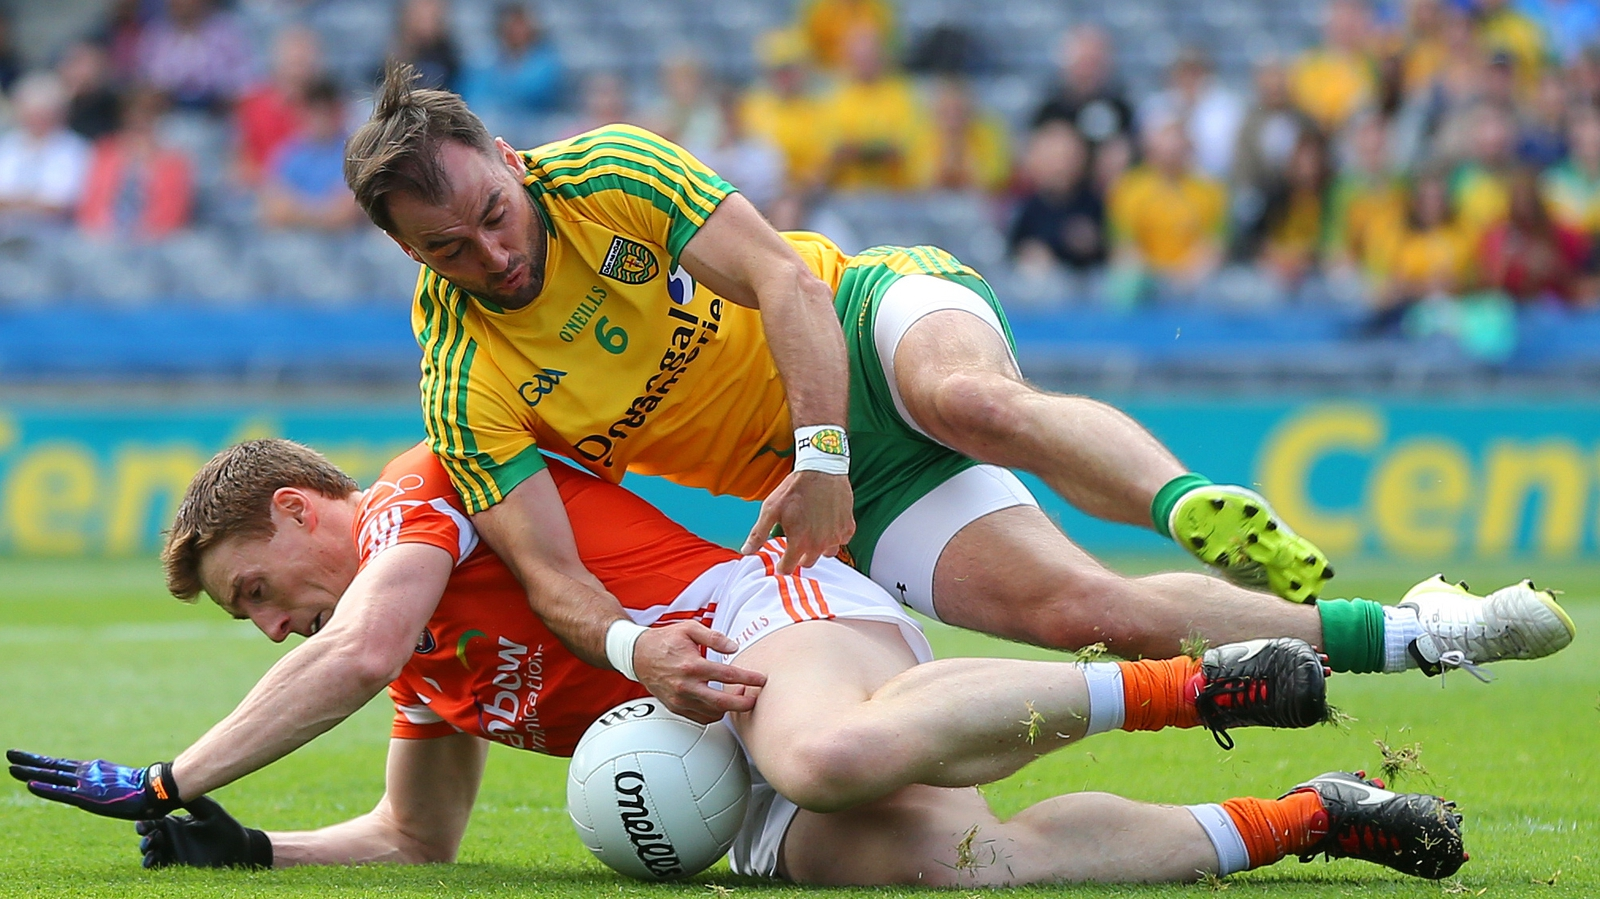 GAA digest: Lacey and McElhinney back for Donegal